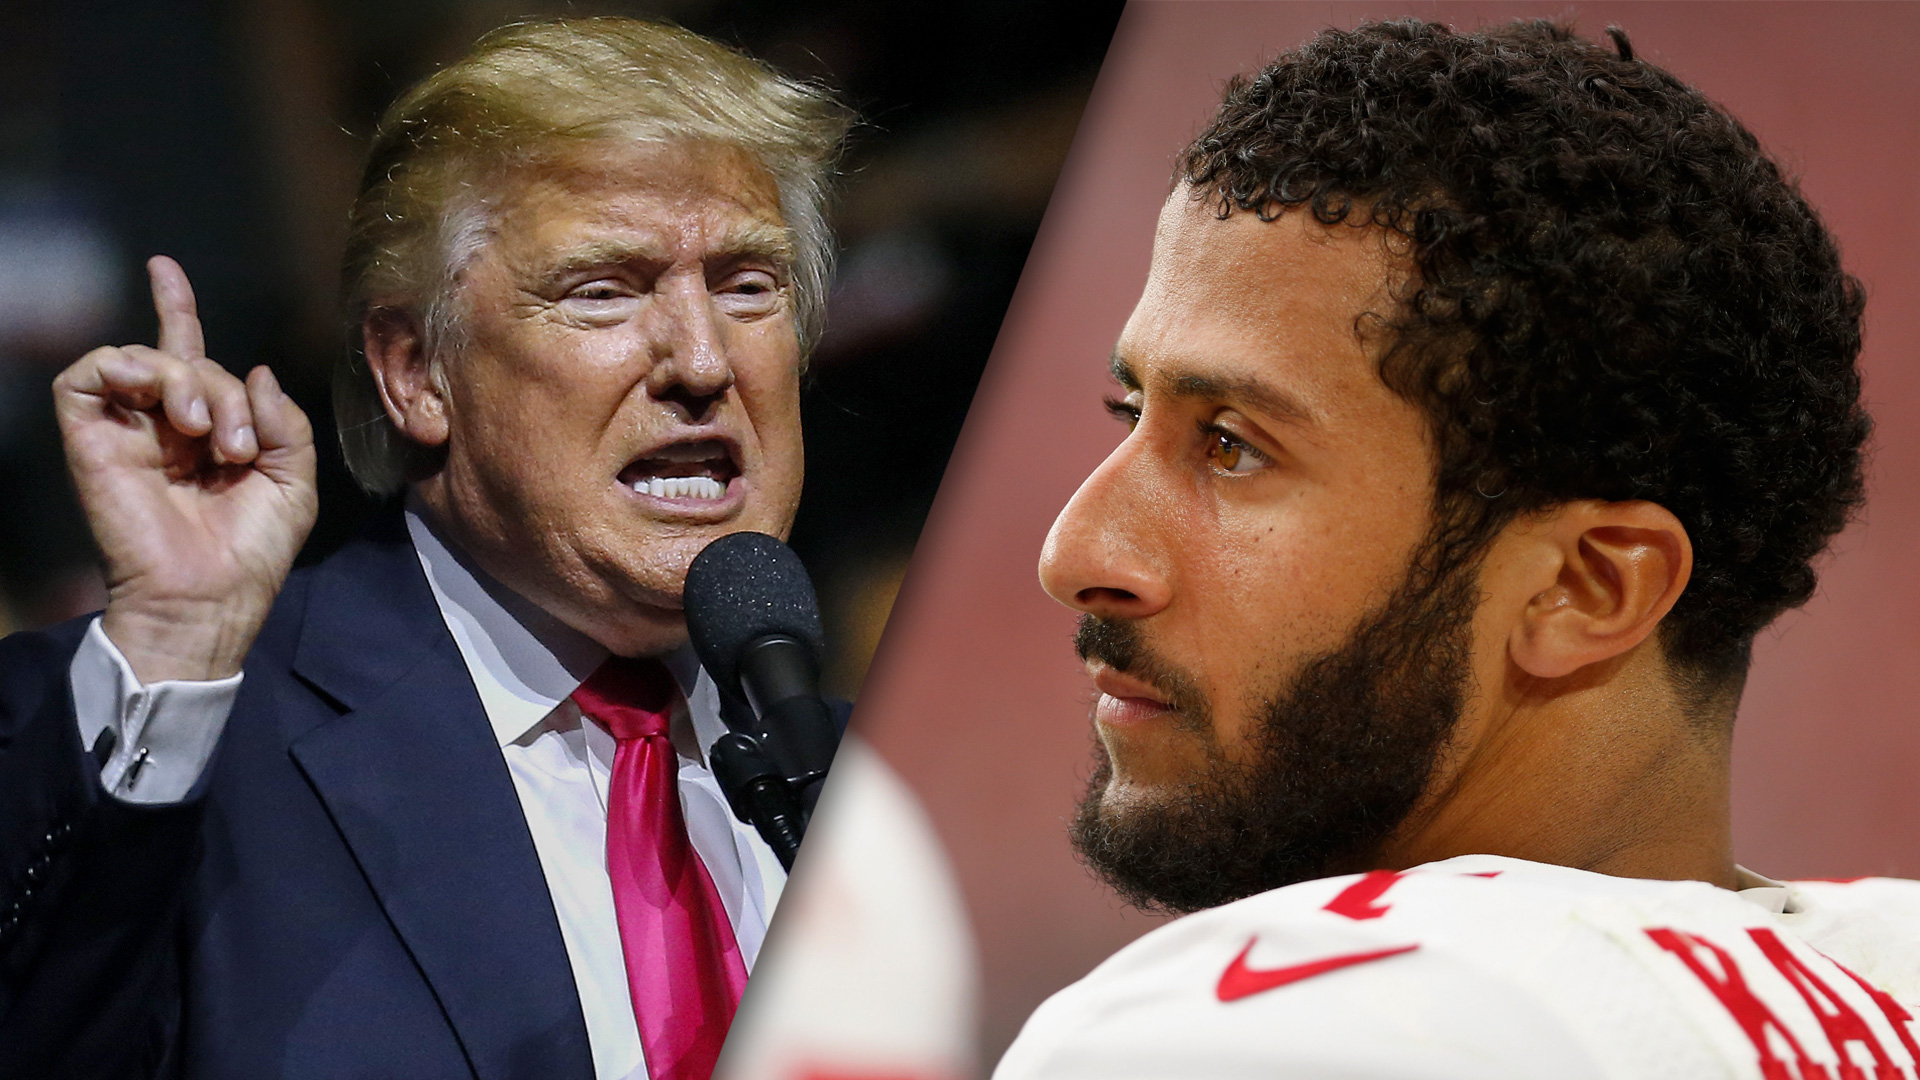 Trump and Kapernick